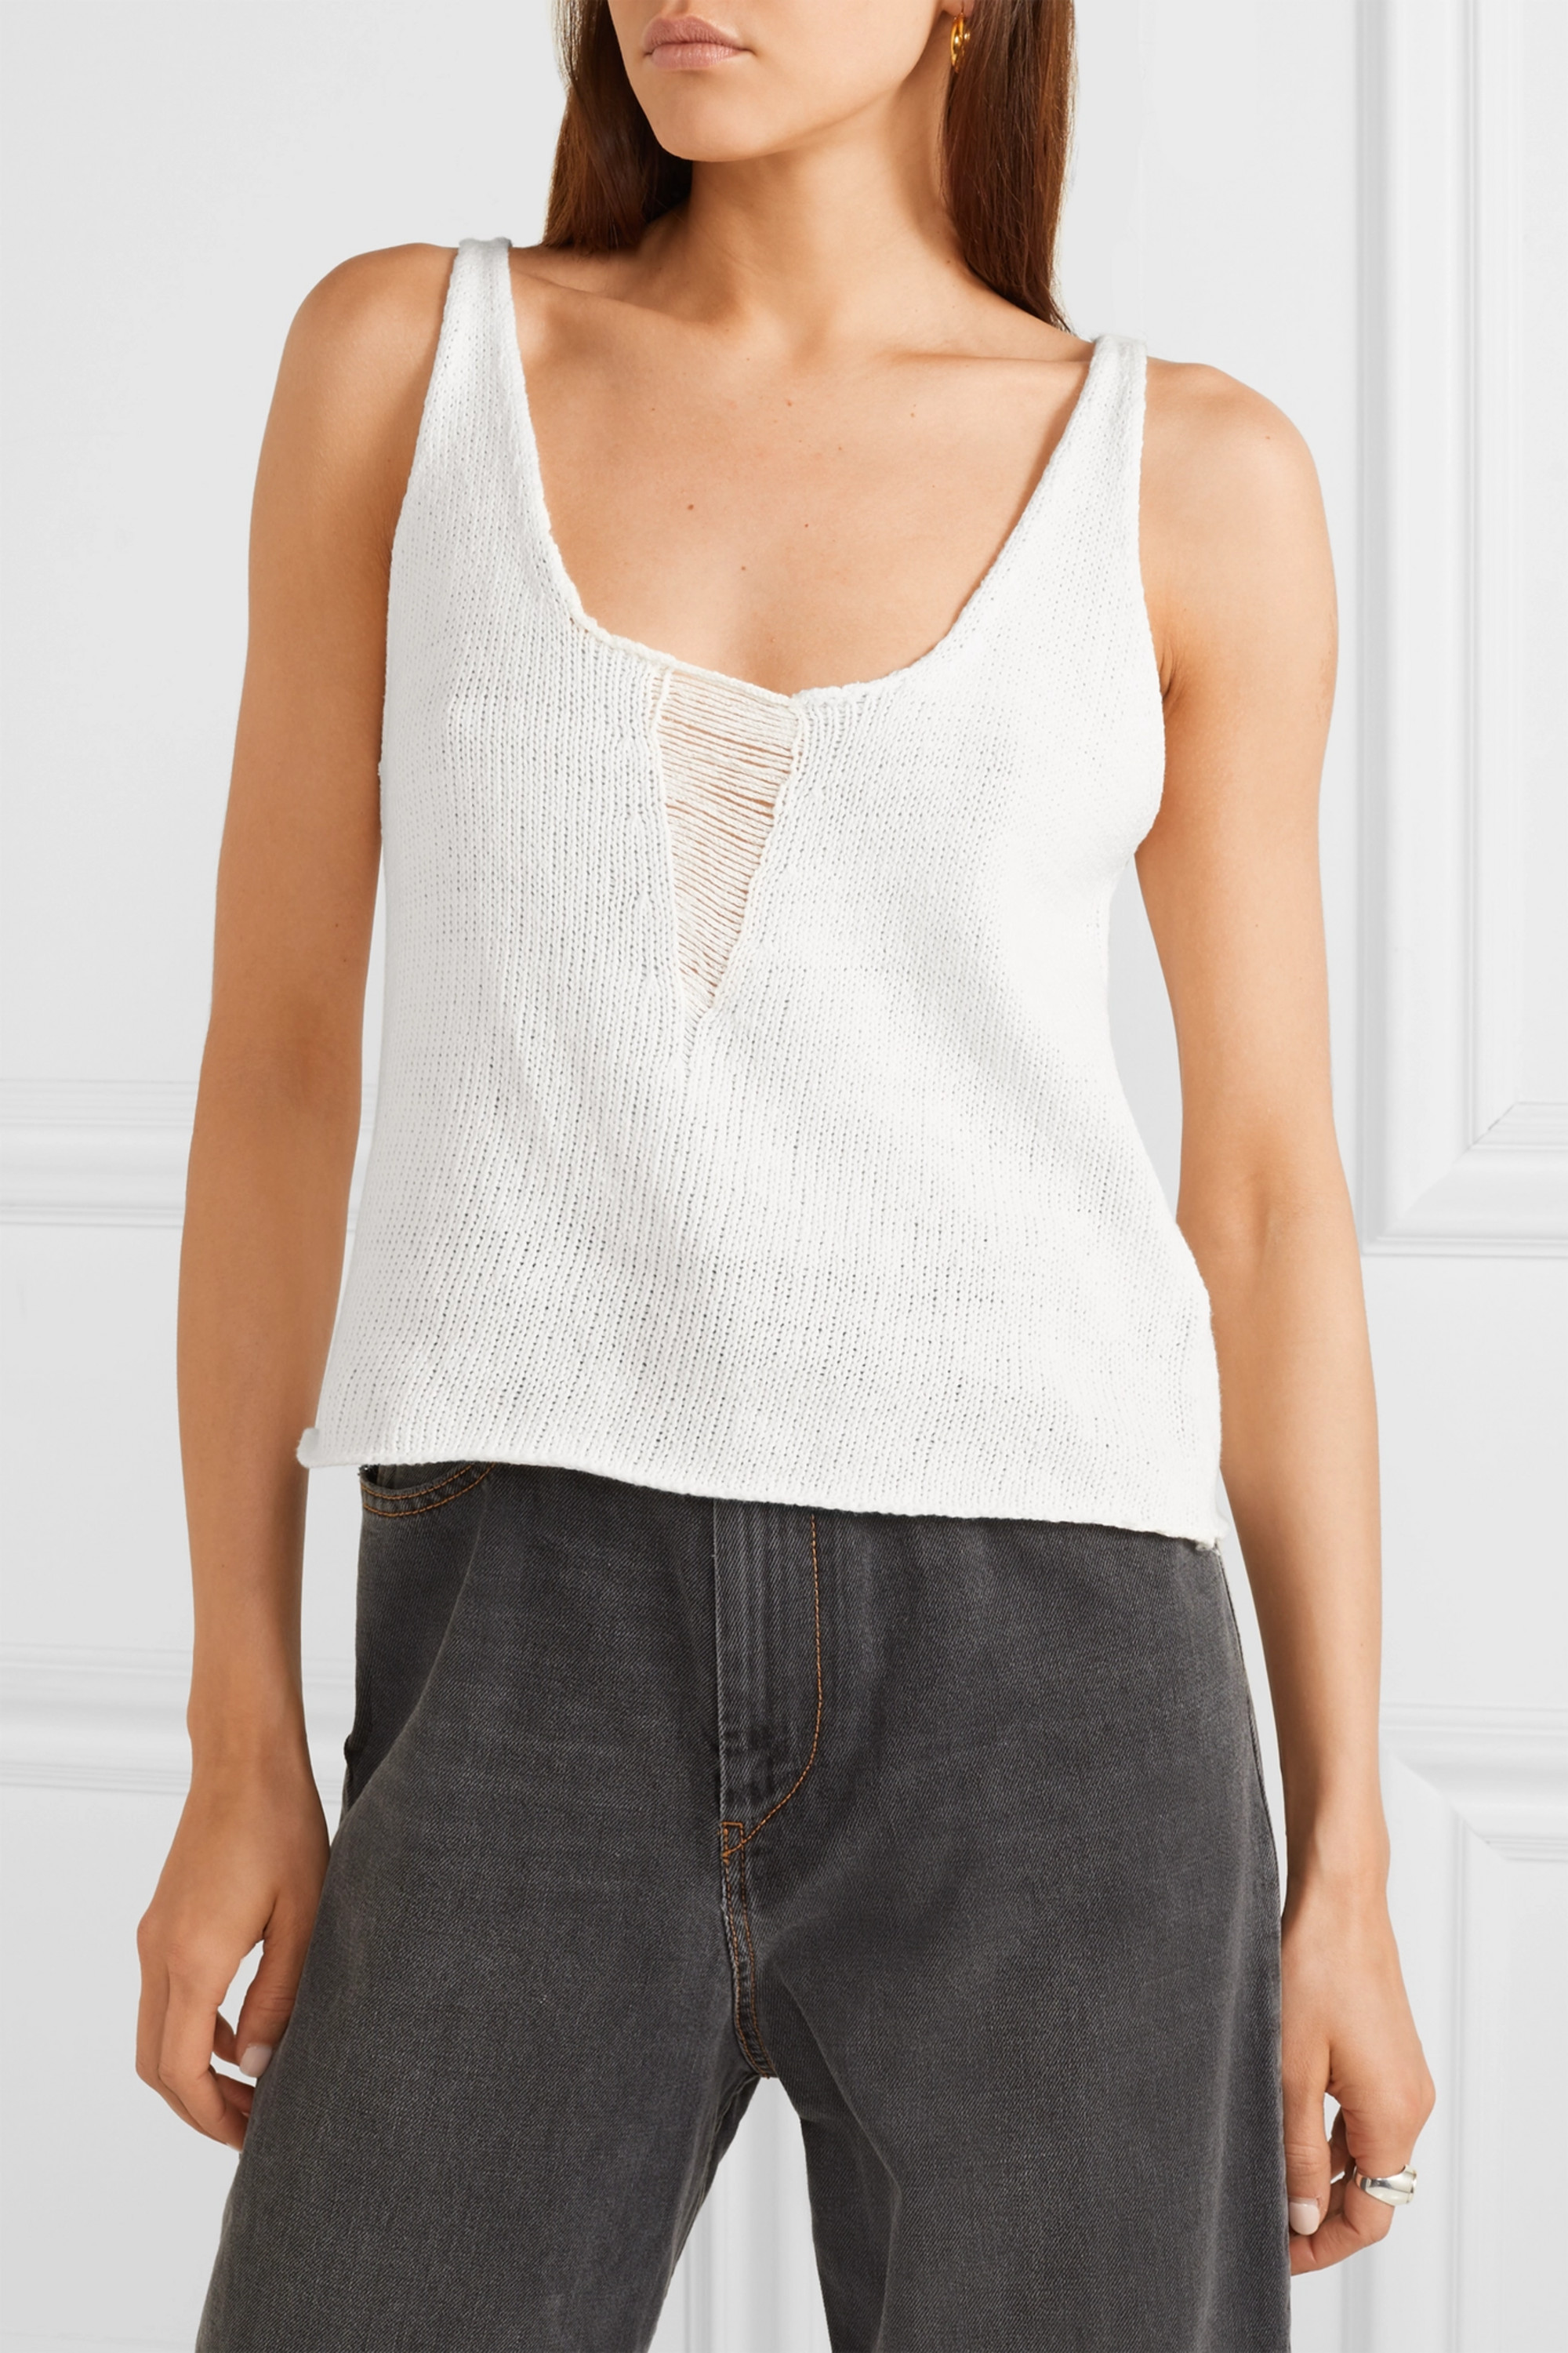 The Range Storm distressed knitted cotton tank